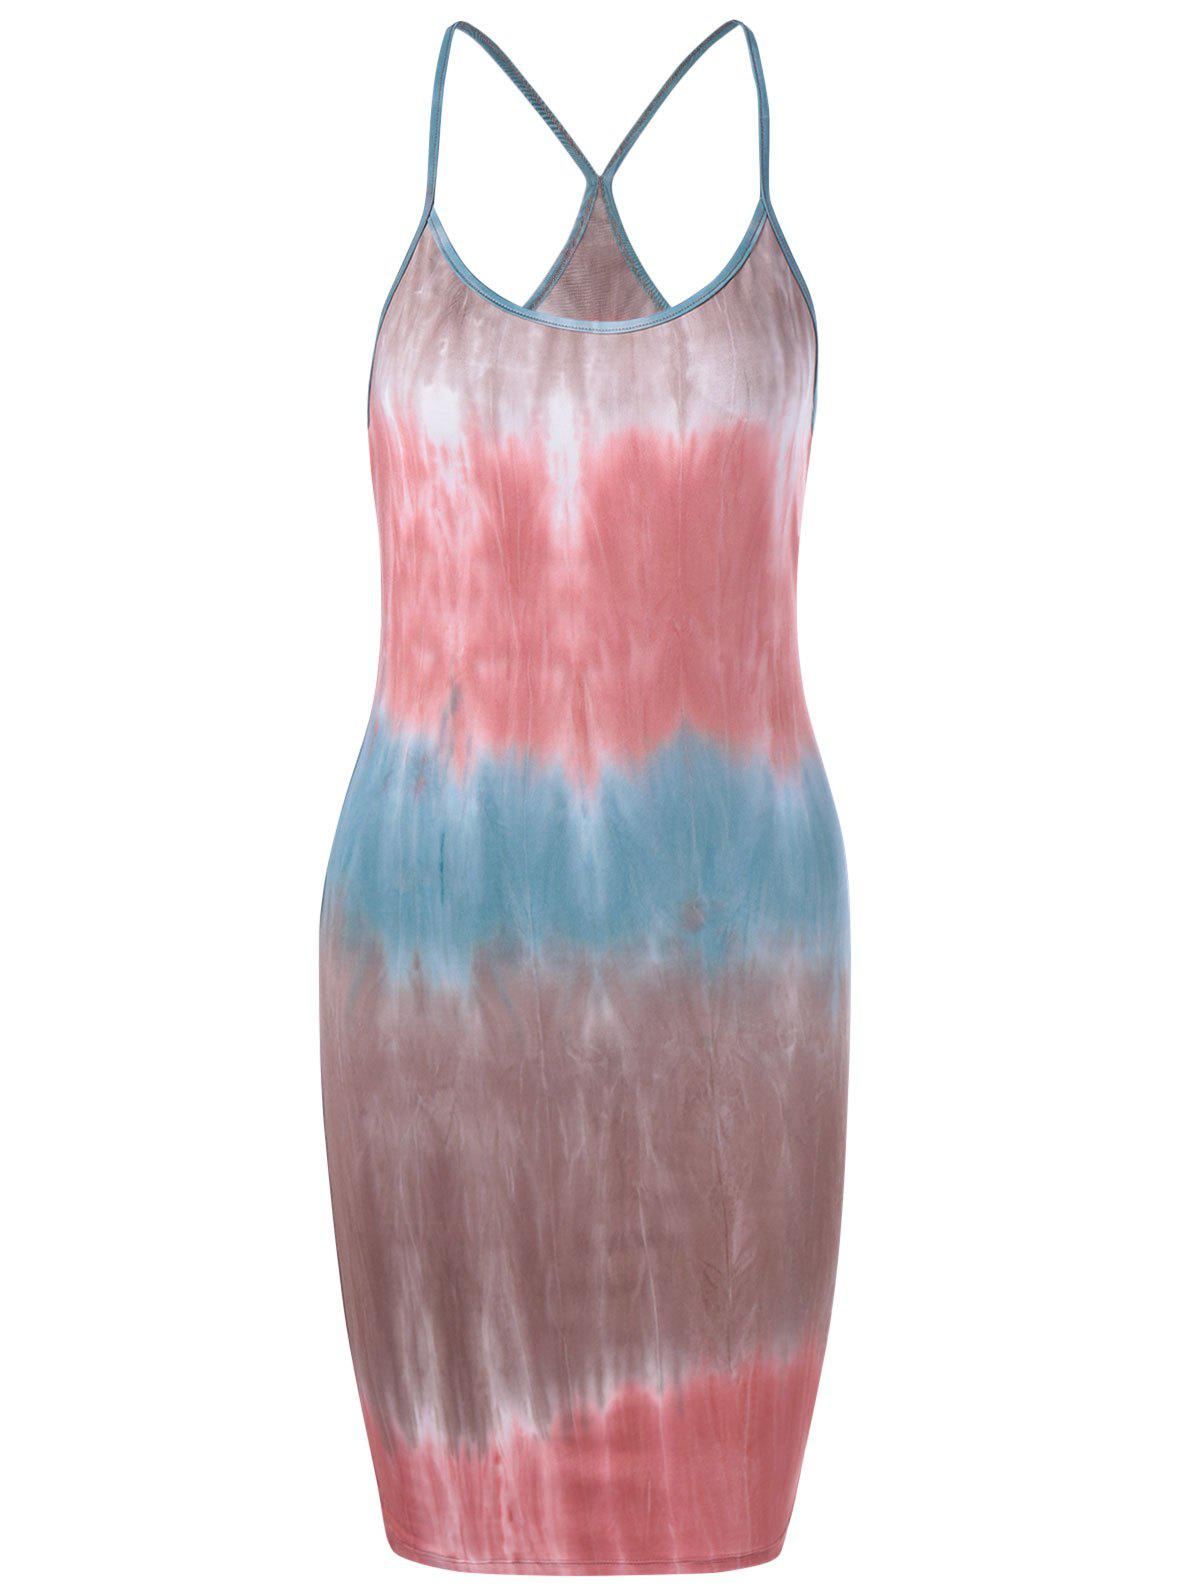 Contracted Knitting Tie-Dye Dress For Women - COLORMIX M